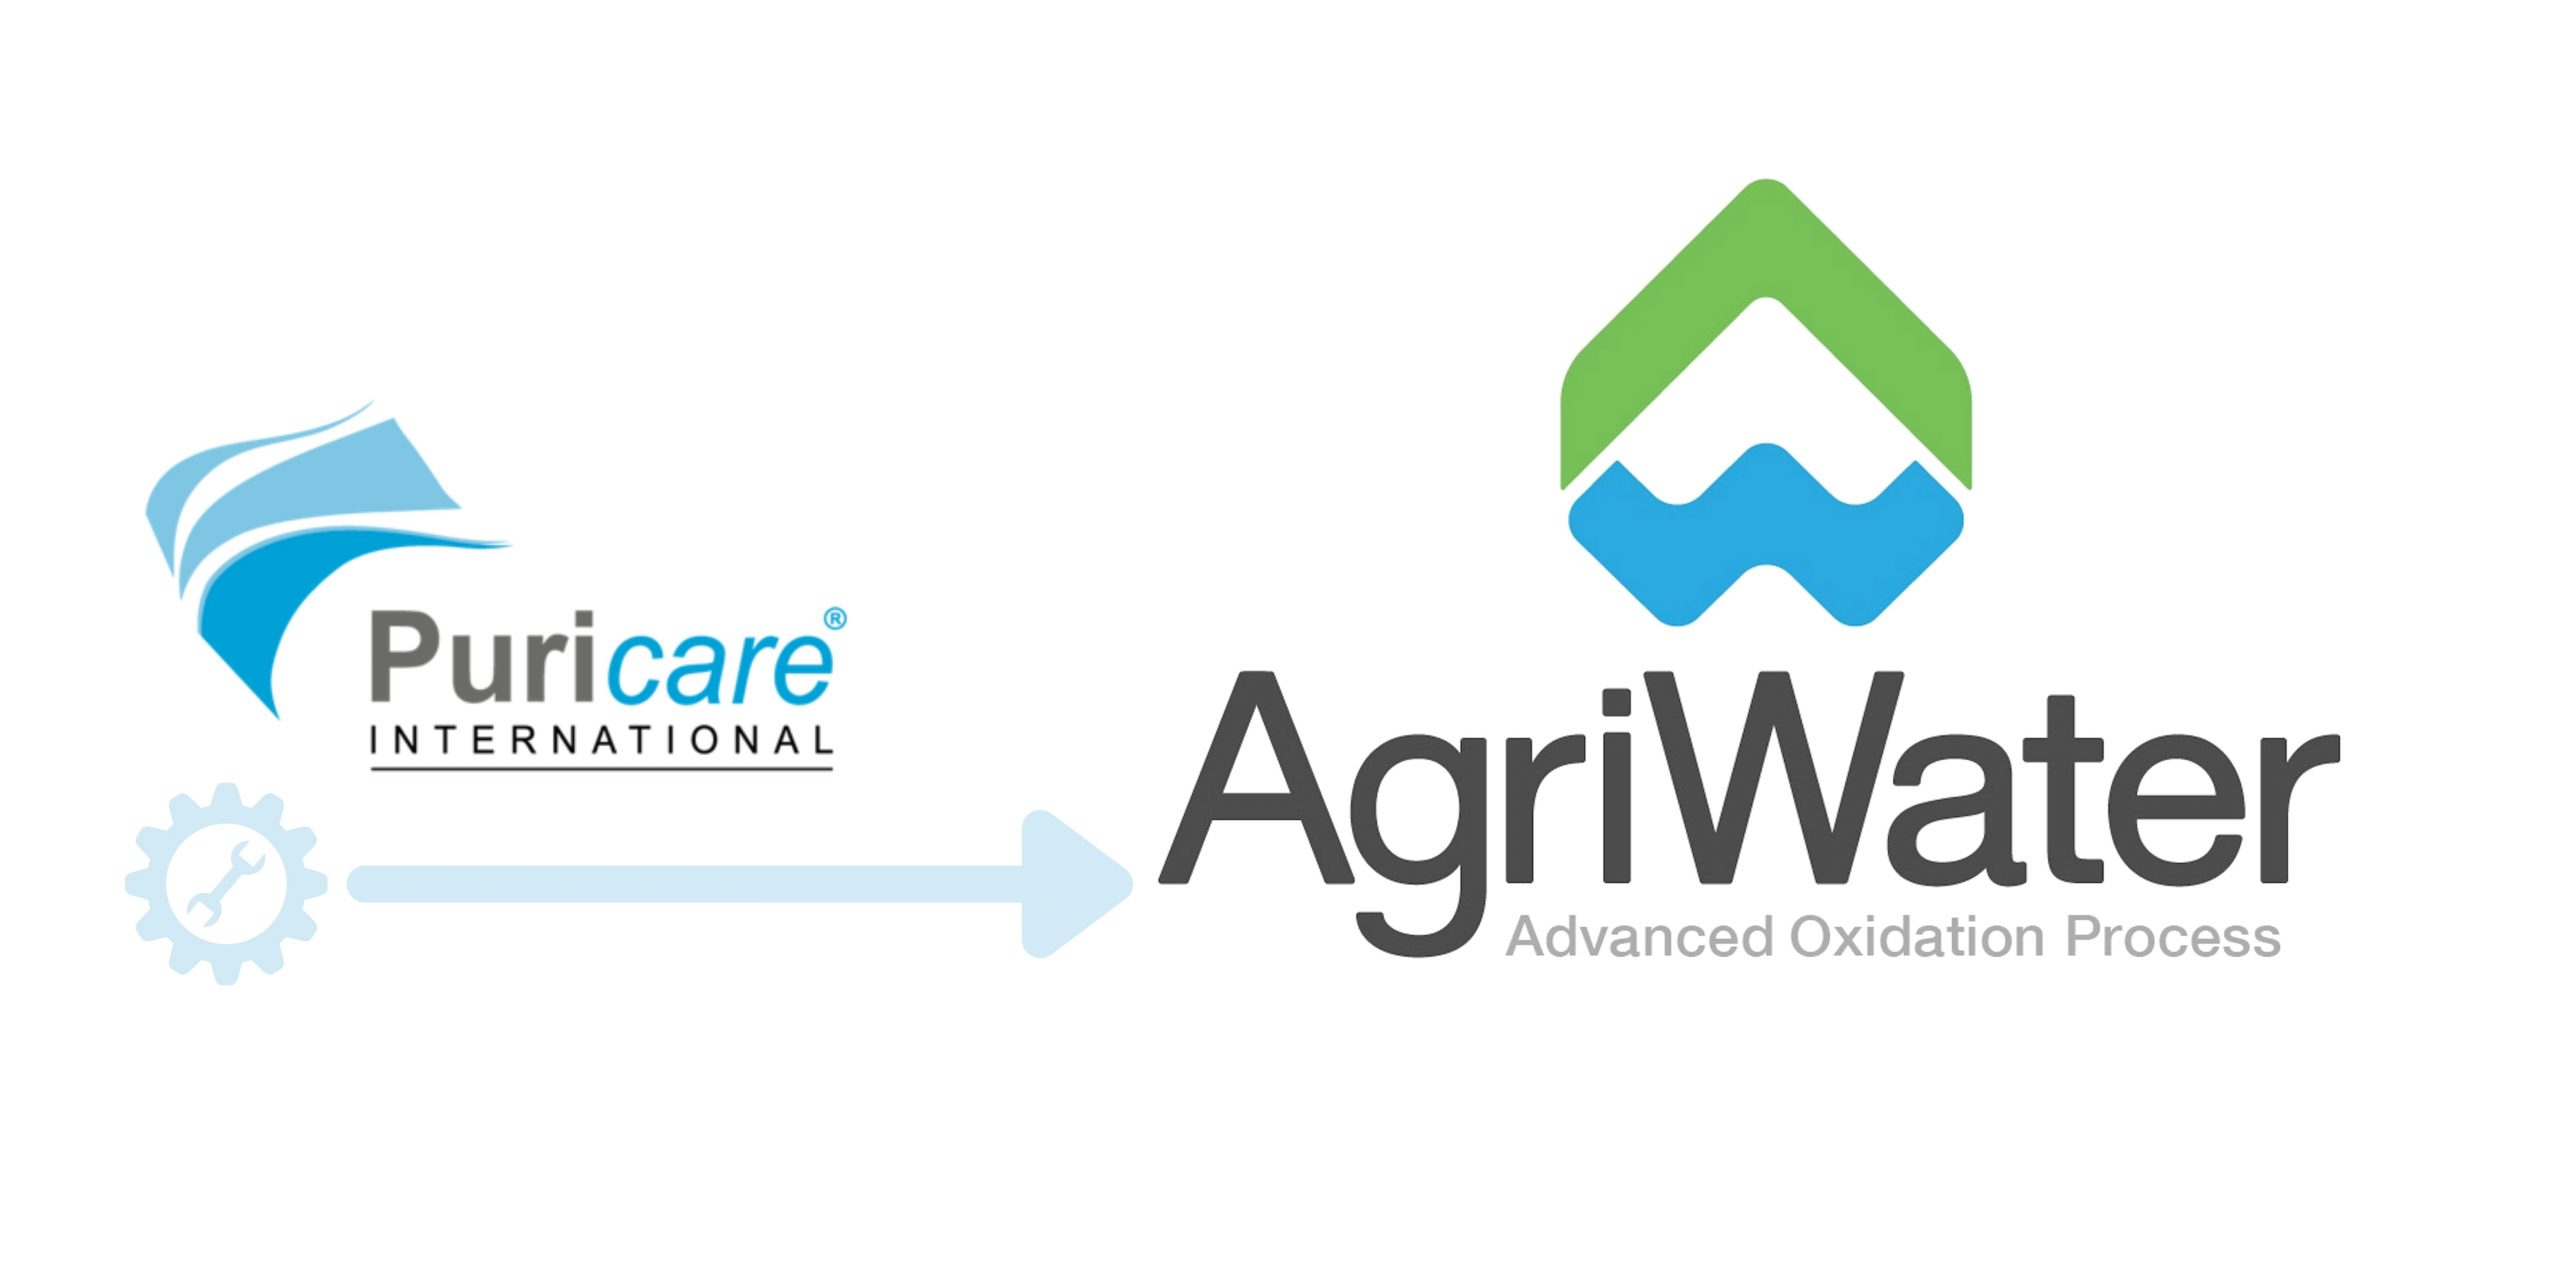 Puricare to AgriWater